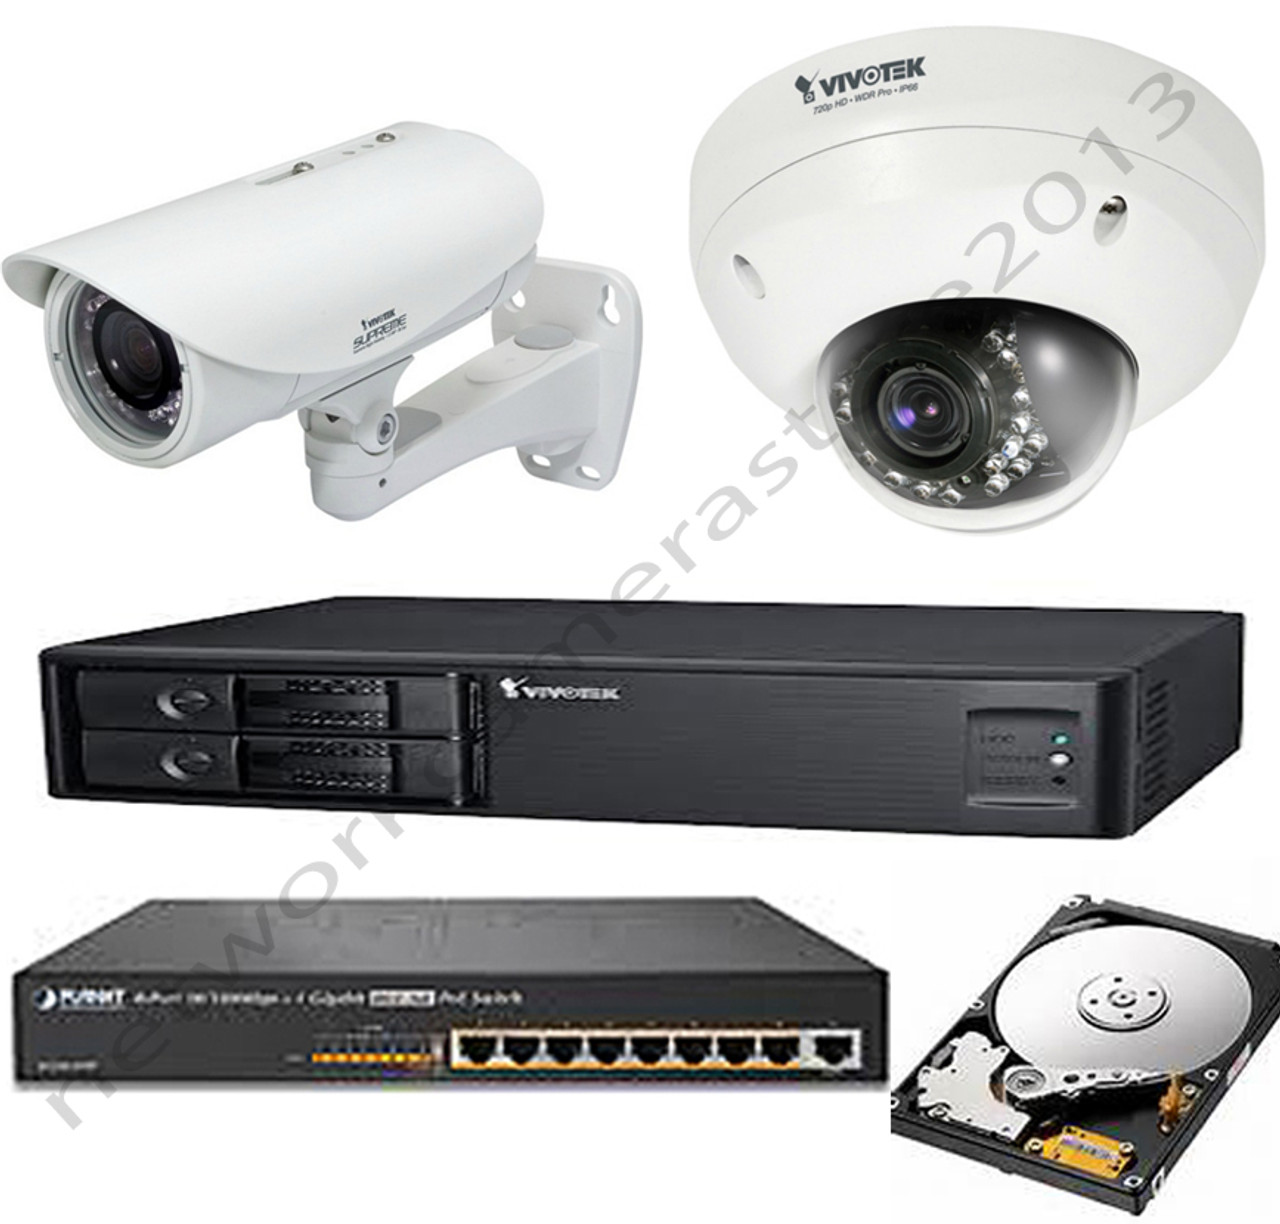 VIVOTEK FD8335H NETWORK CAMERA TREIBER WINDOWS 8